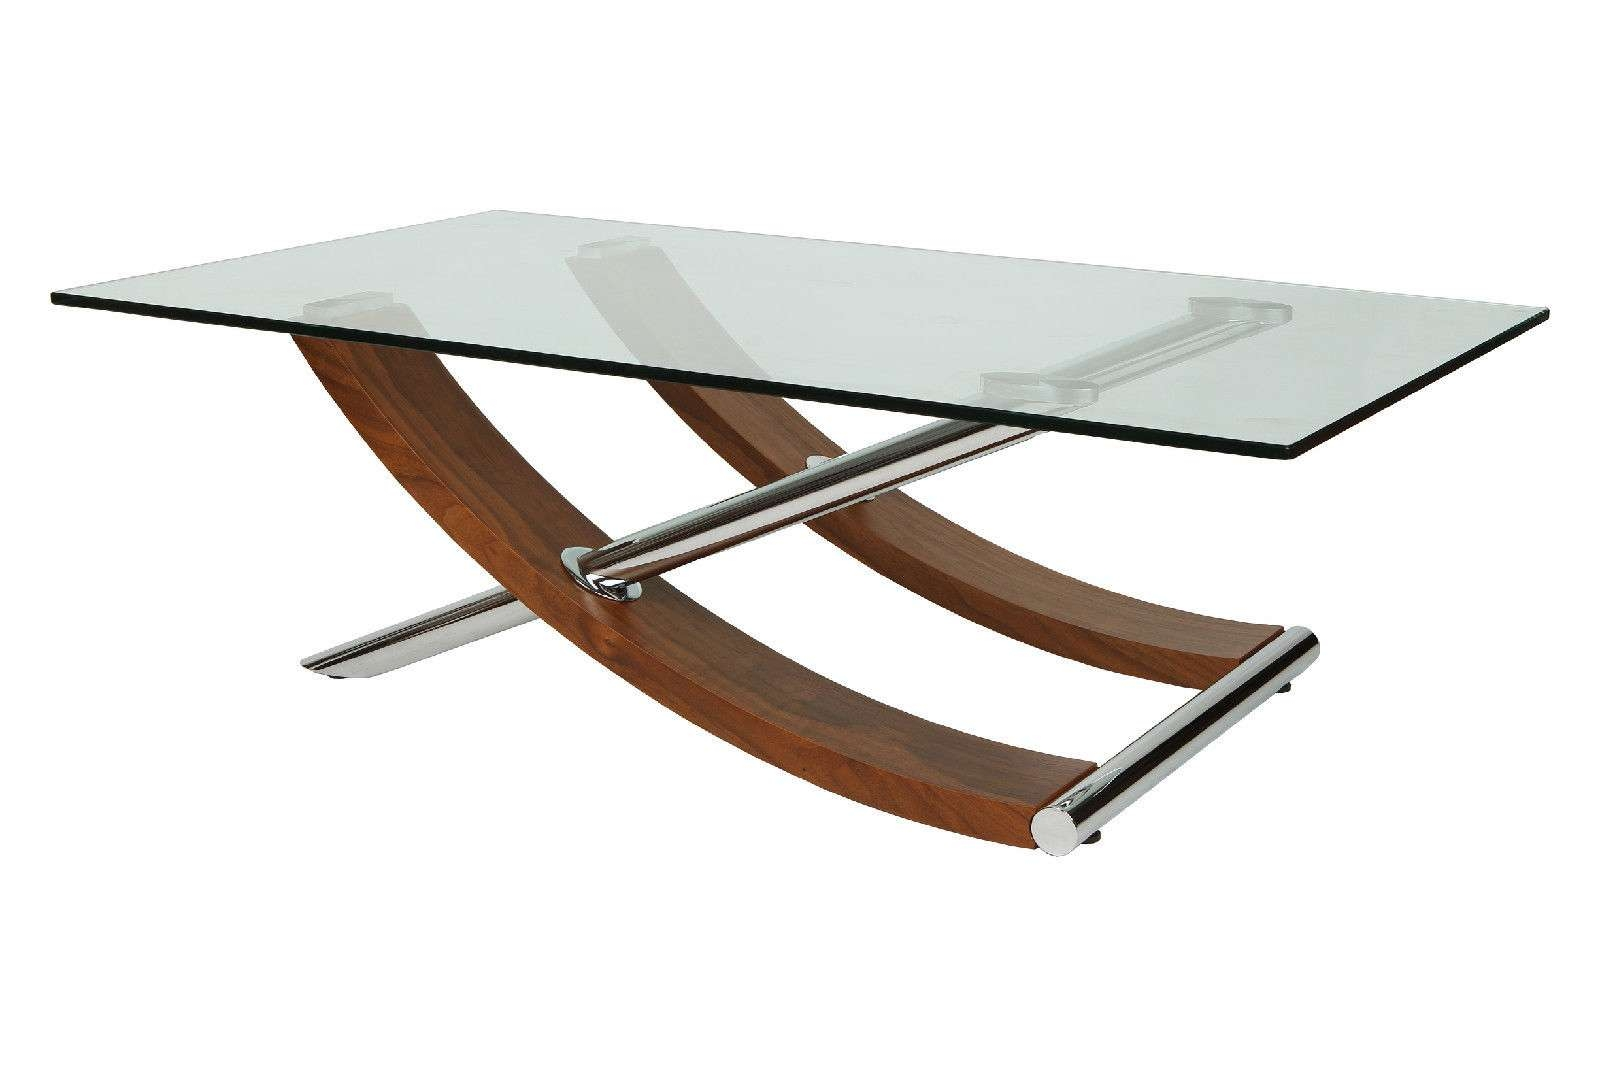 Recent Coffee Tables With Chrome Legs With Amazing Coffee Table Legs 62 For Interior Designing Home Ideas (View 16 of 20)